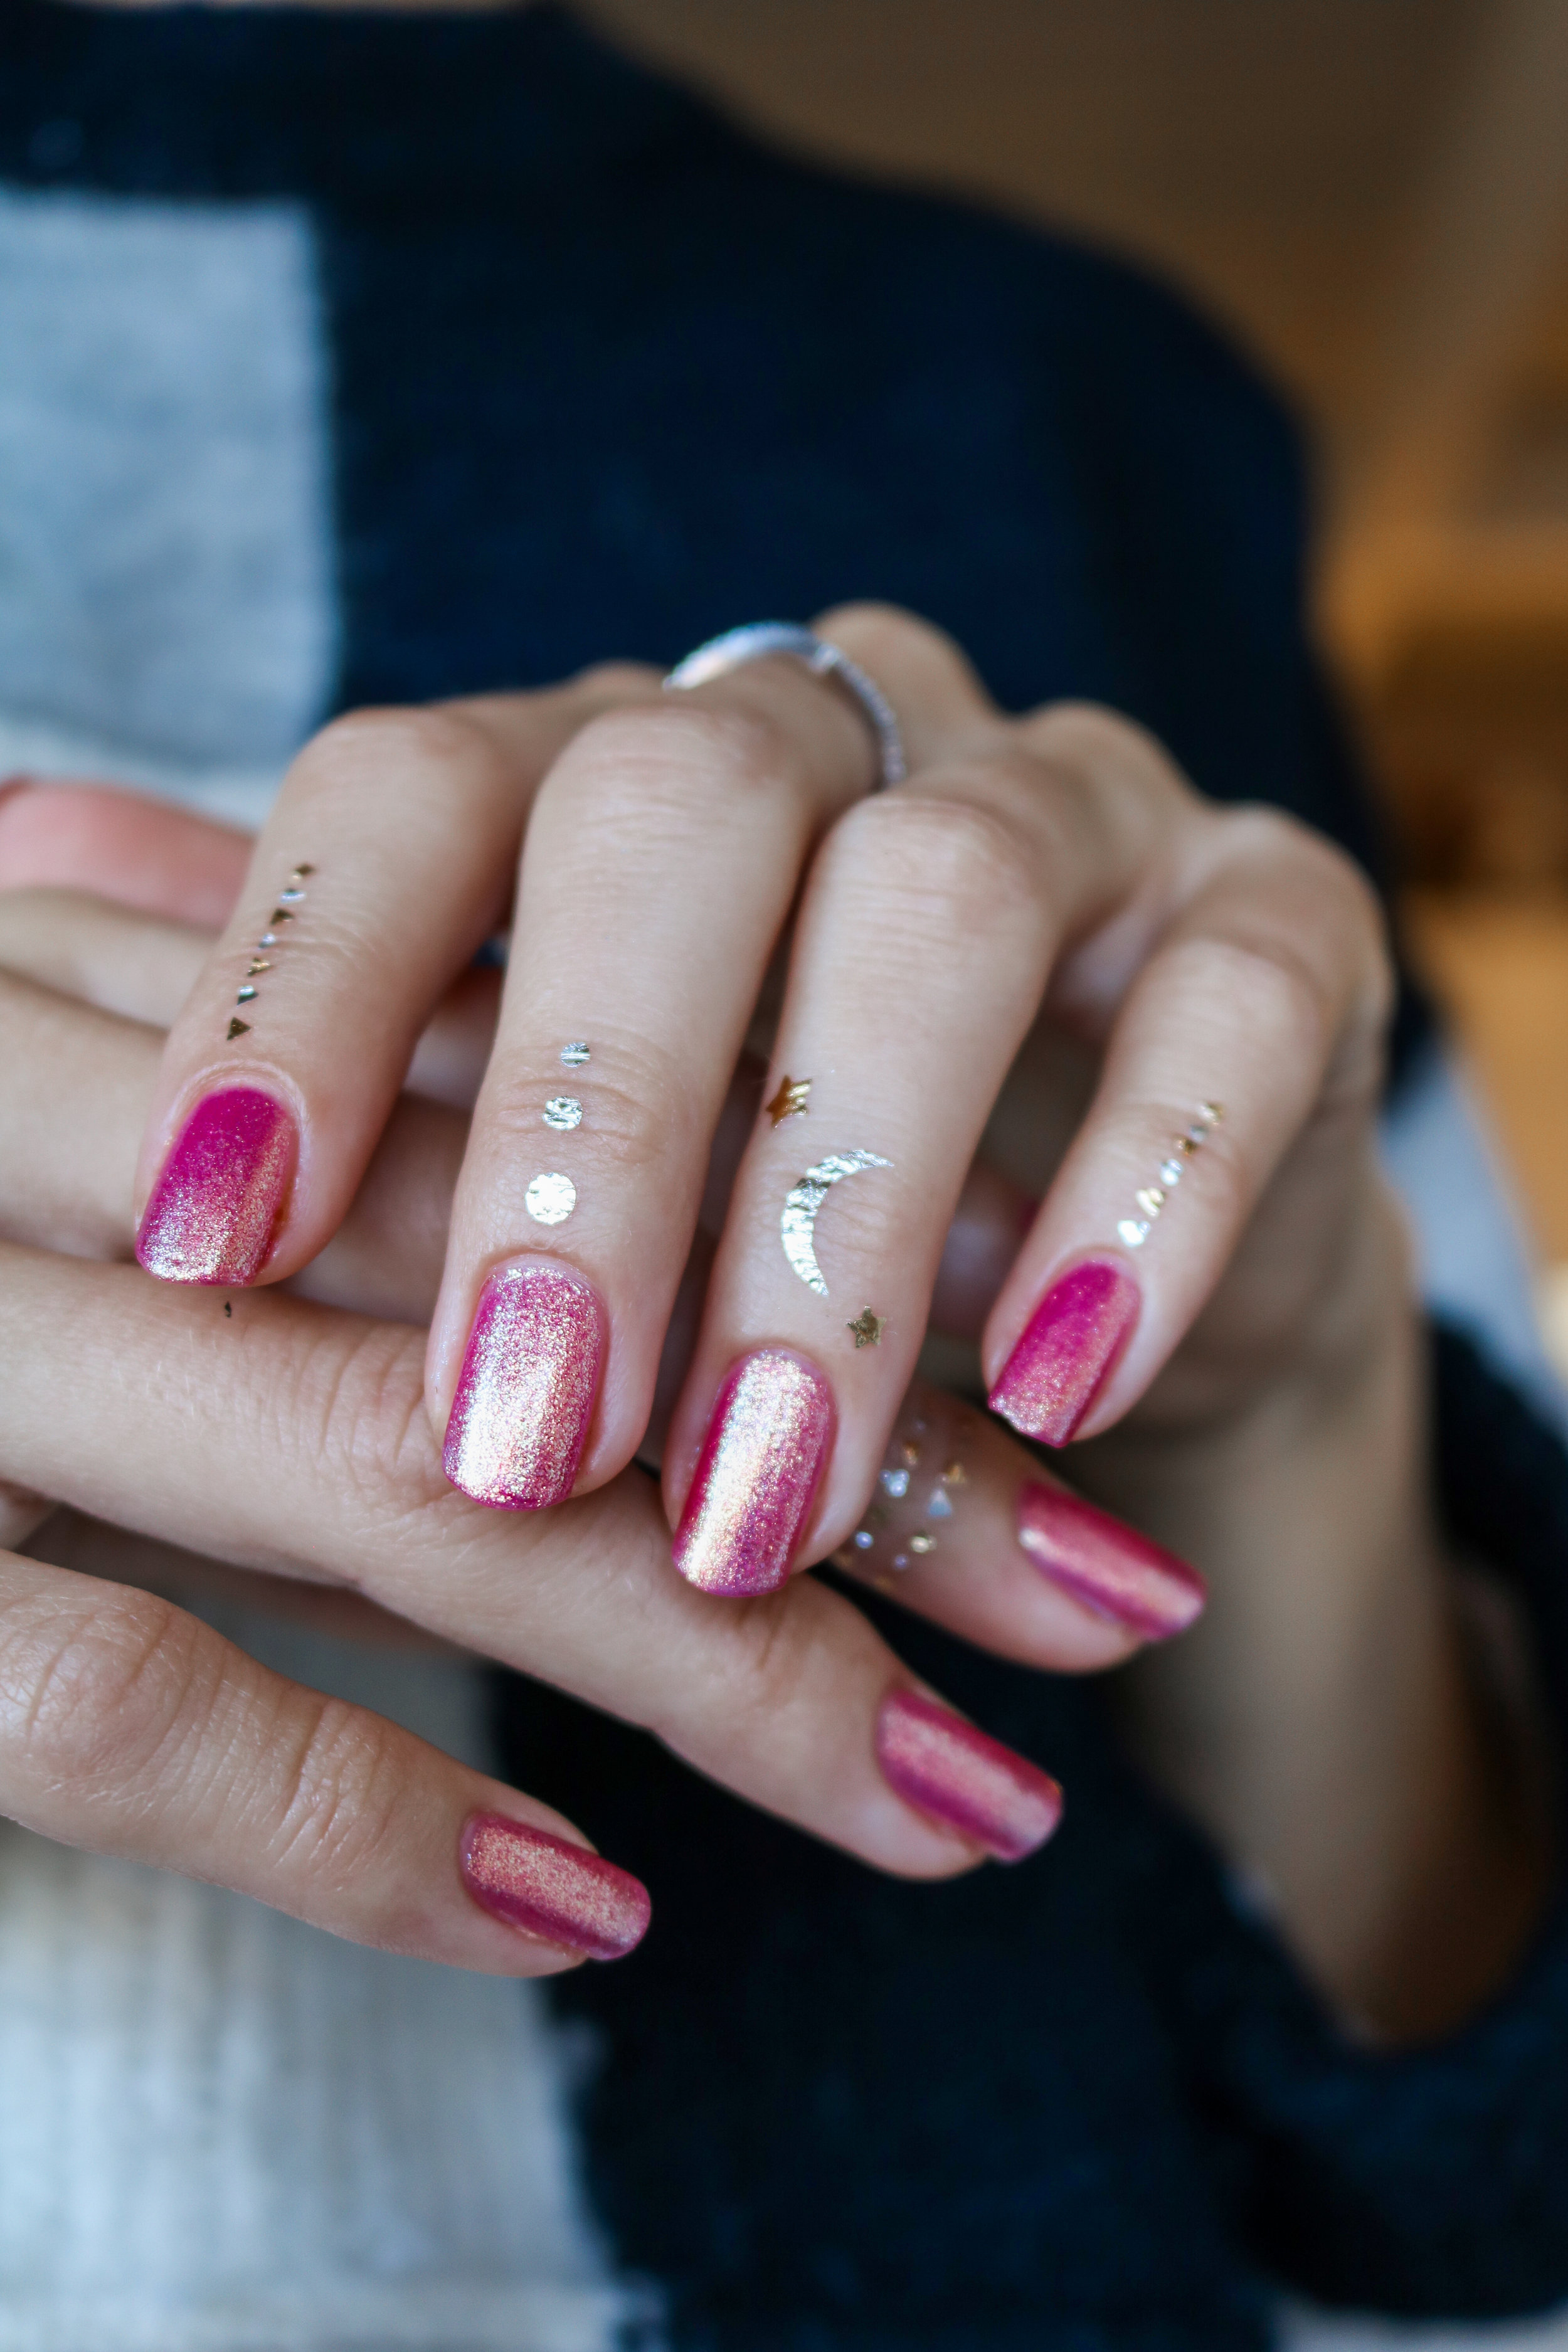 The Hungarian Brunette Urban Outfitter nail polish in Damsel - sparkly pink with gold undertones